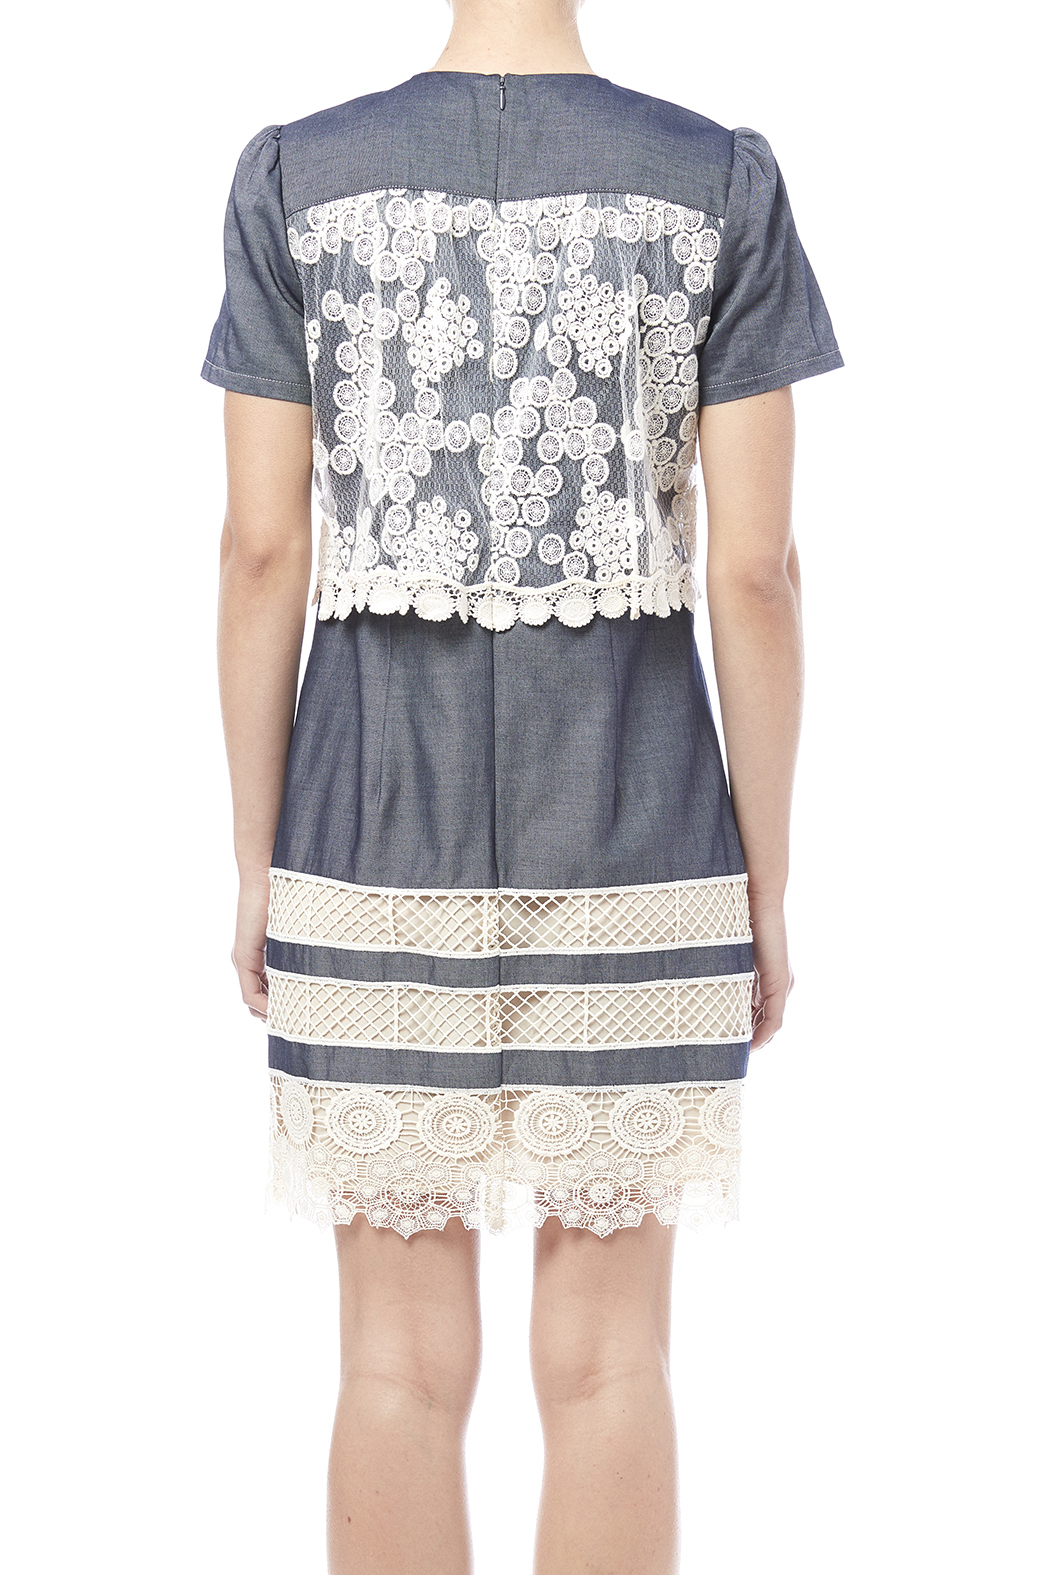 Anna sui chambray lace dress from manhattan shoptiques for Chambray dress